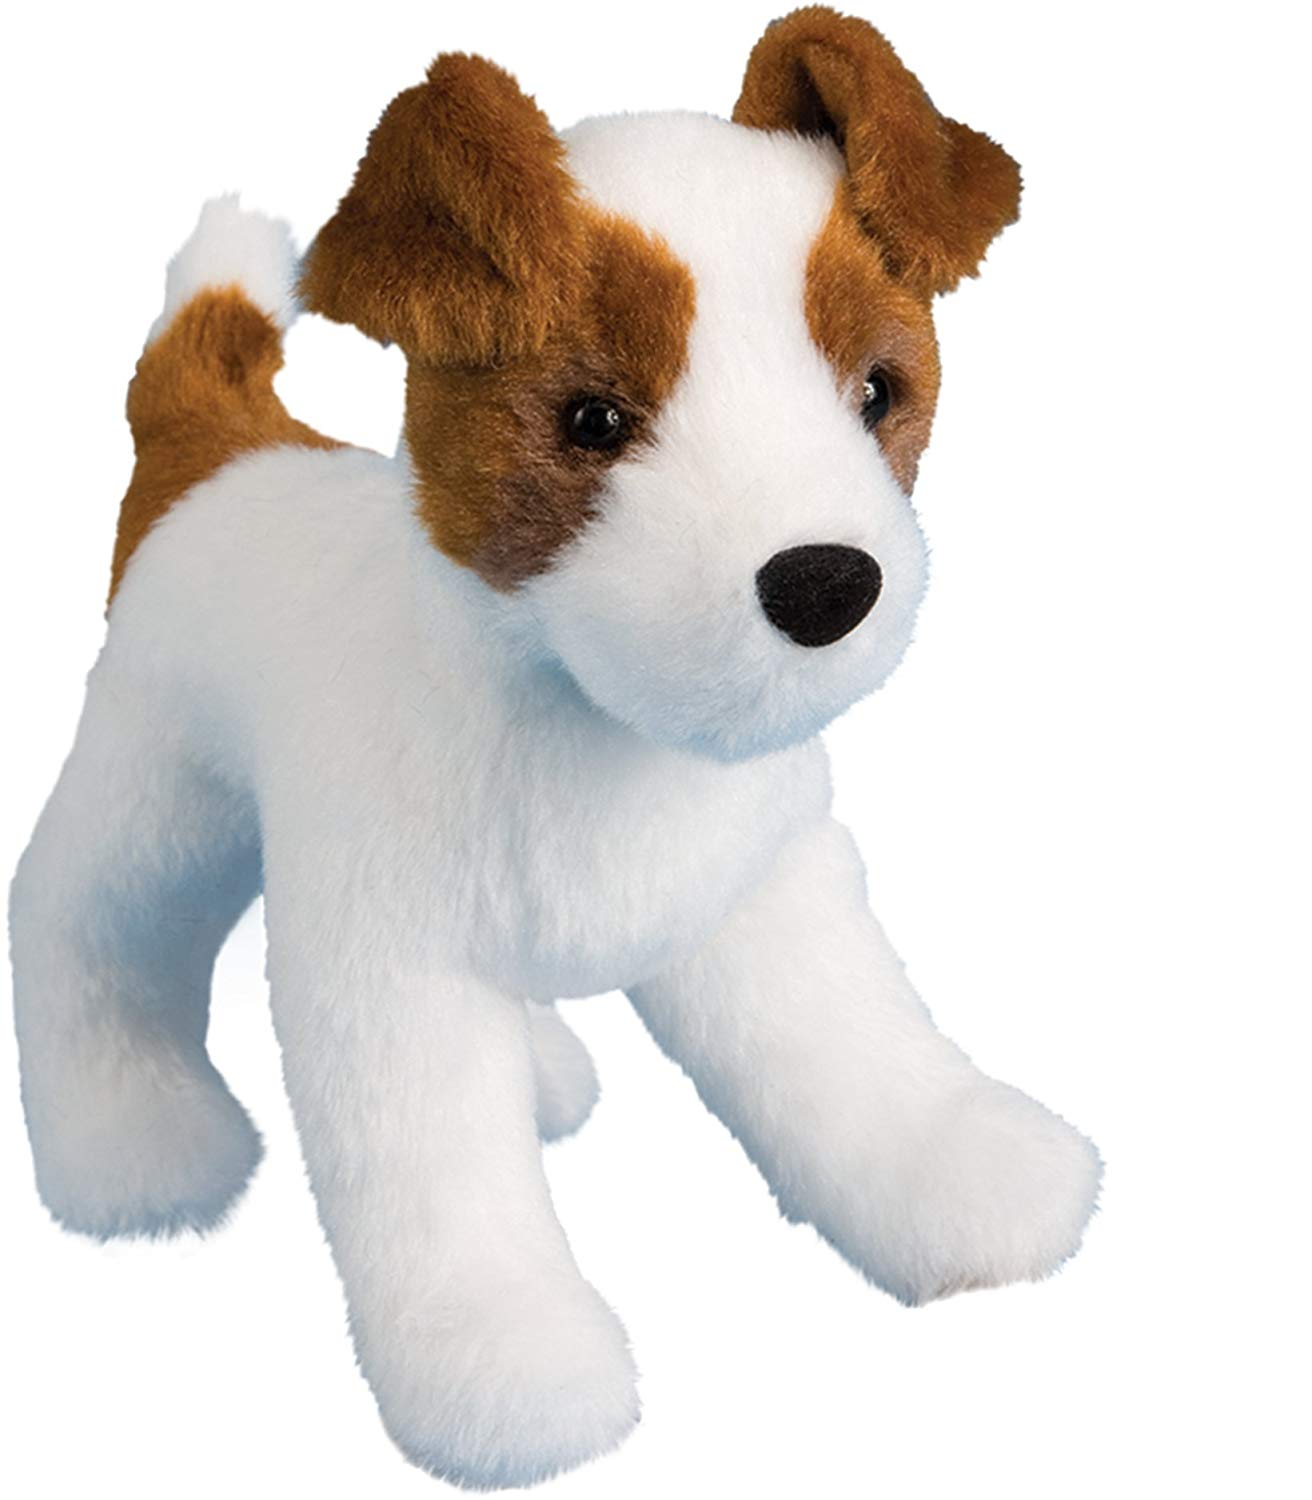 Cuddly Jack Russell - Fully Customisable Plush